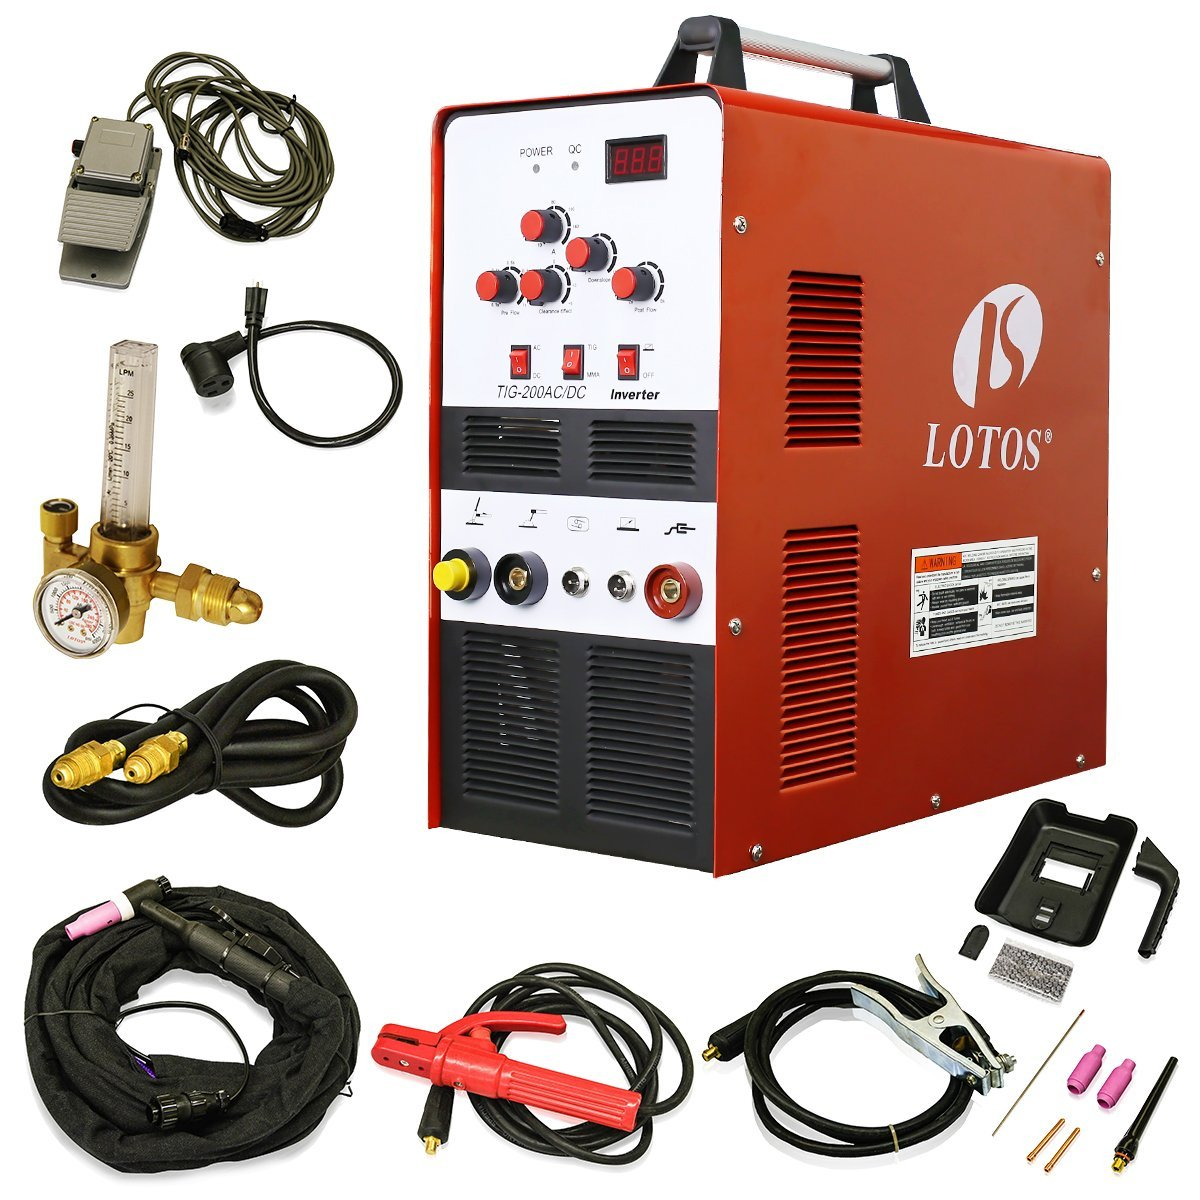 LOTOS TIG200 200A AC/DC Aluminum Tig/Stick Welder Square Wave Inverter with Pedal and Mask